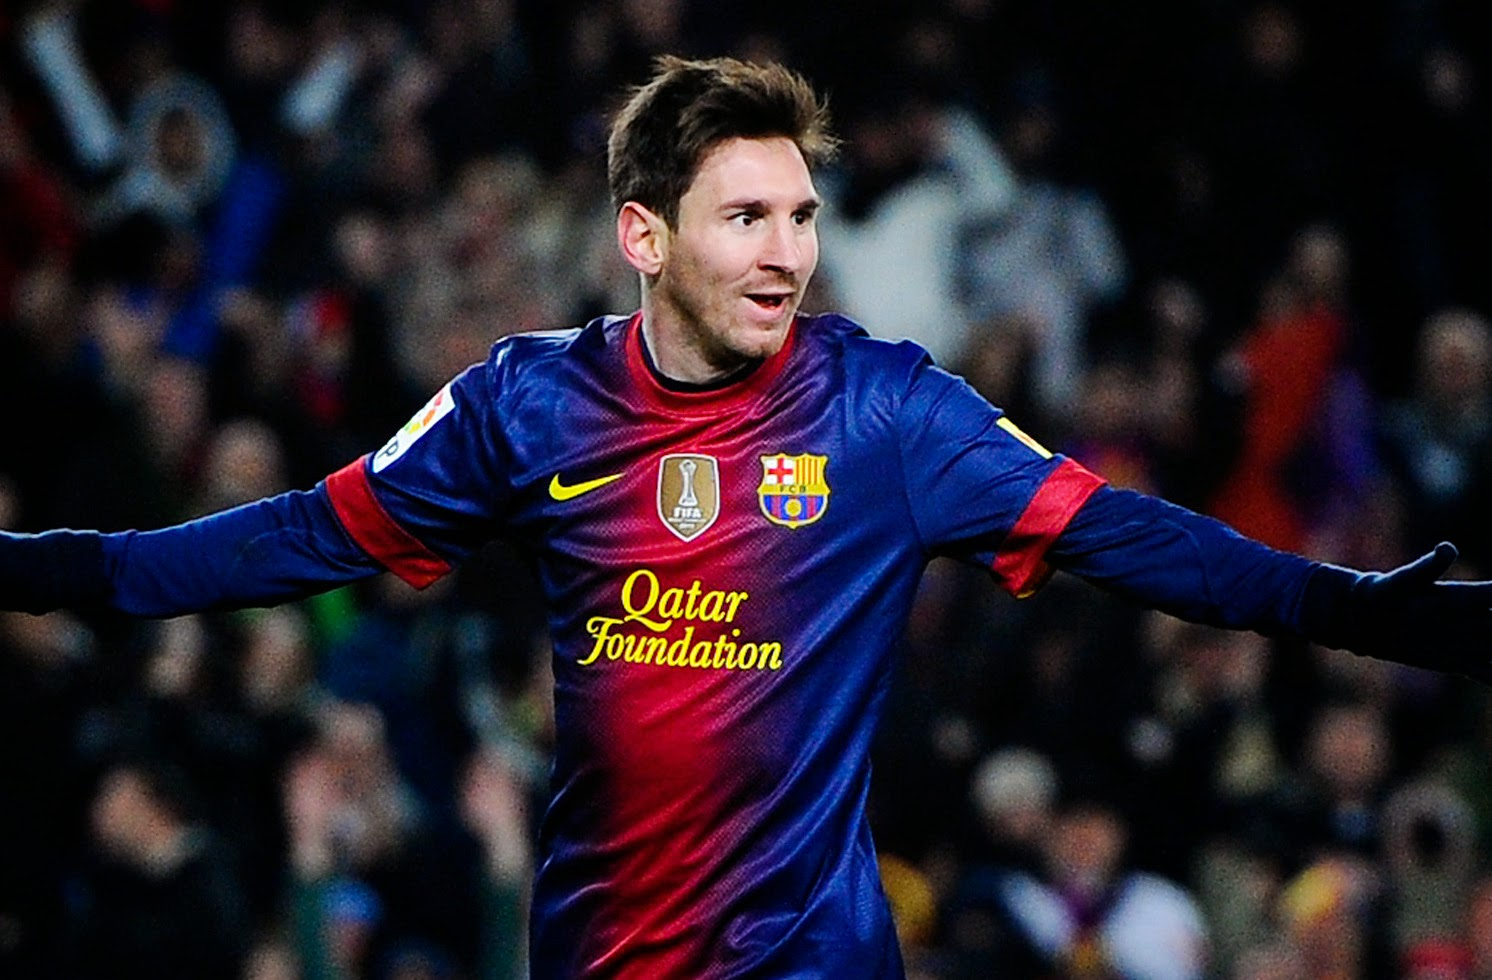 Lionel Messi 'fed up' at Barcelona, will accept £500m Chelsea transfer